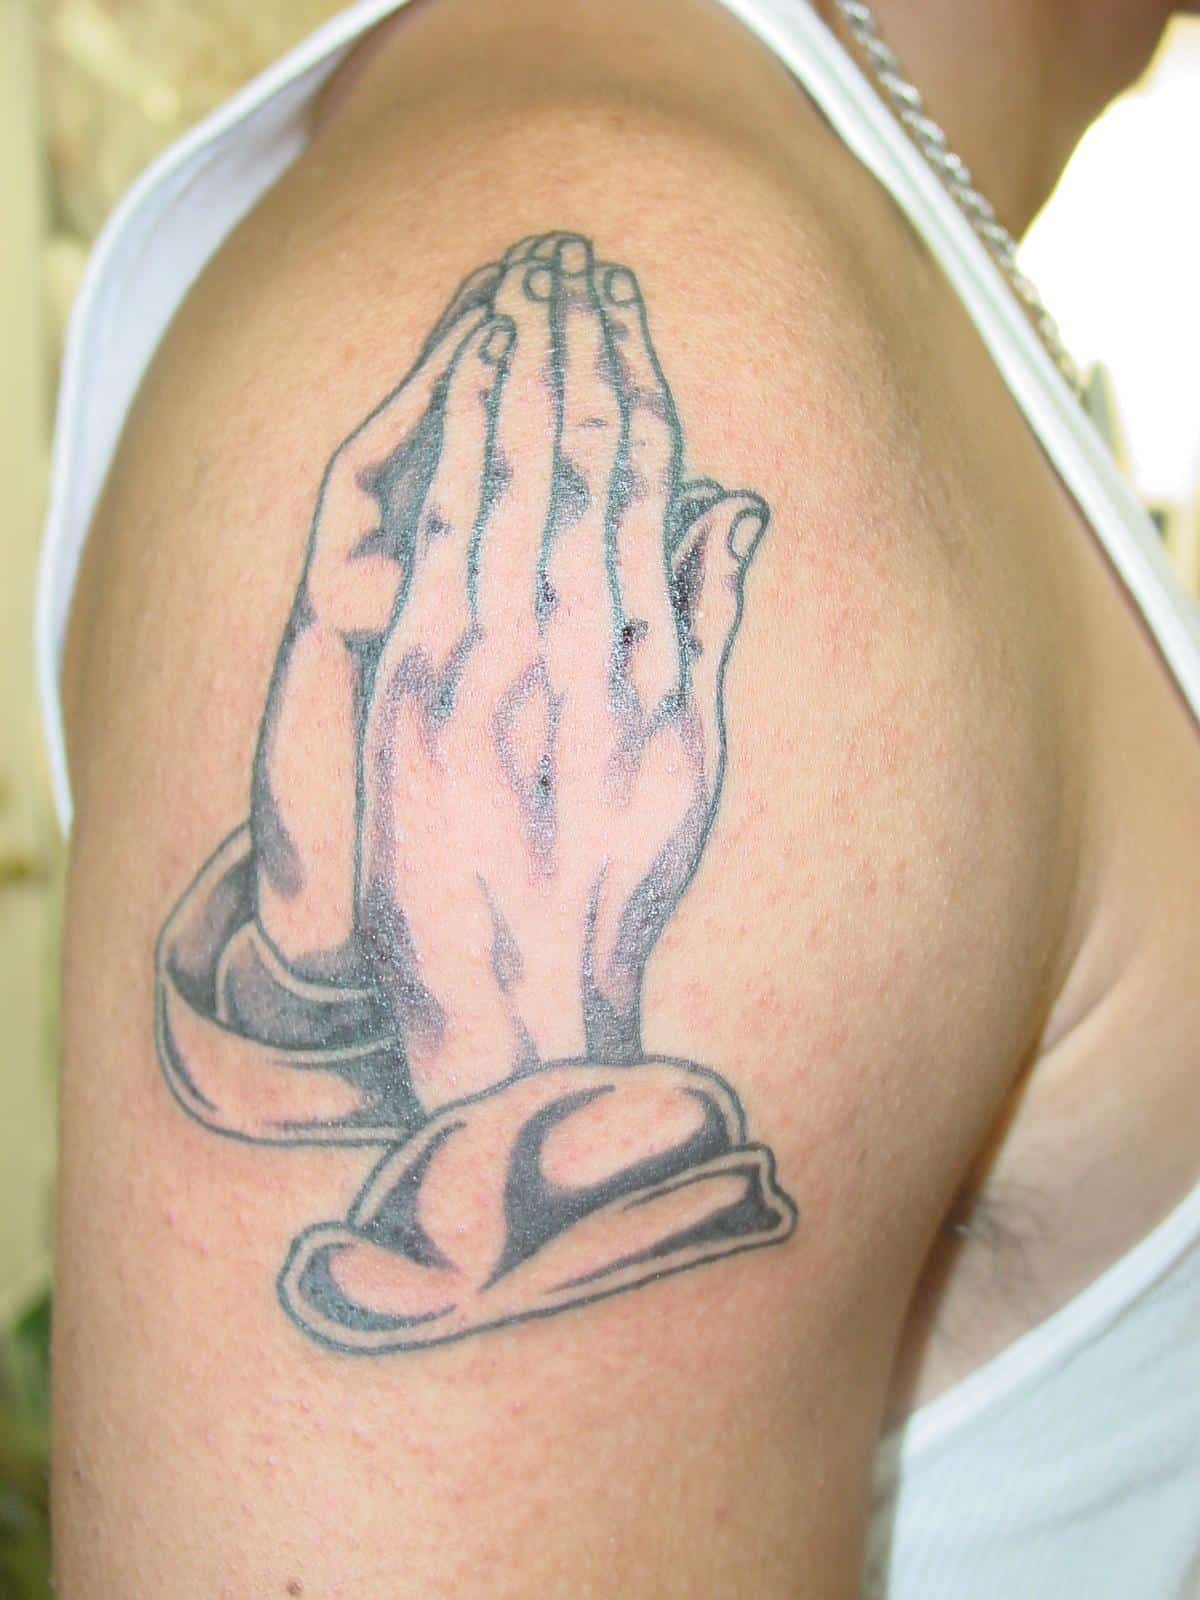 Praying-Hands-Tattoo-Design-for-Younger-Boys